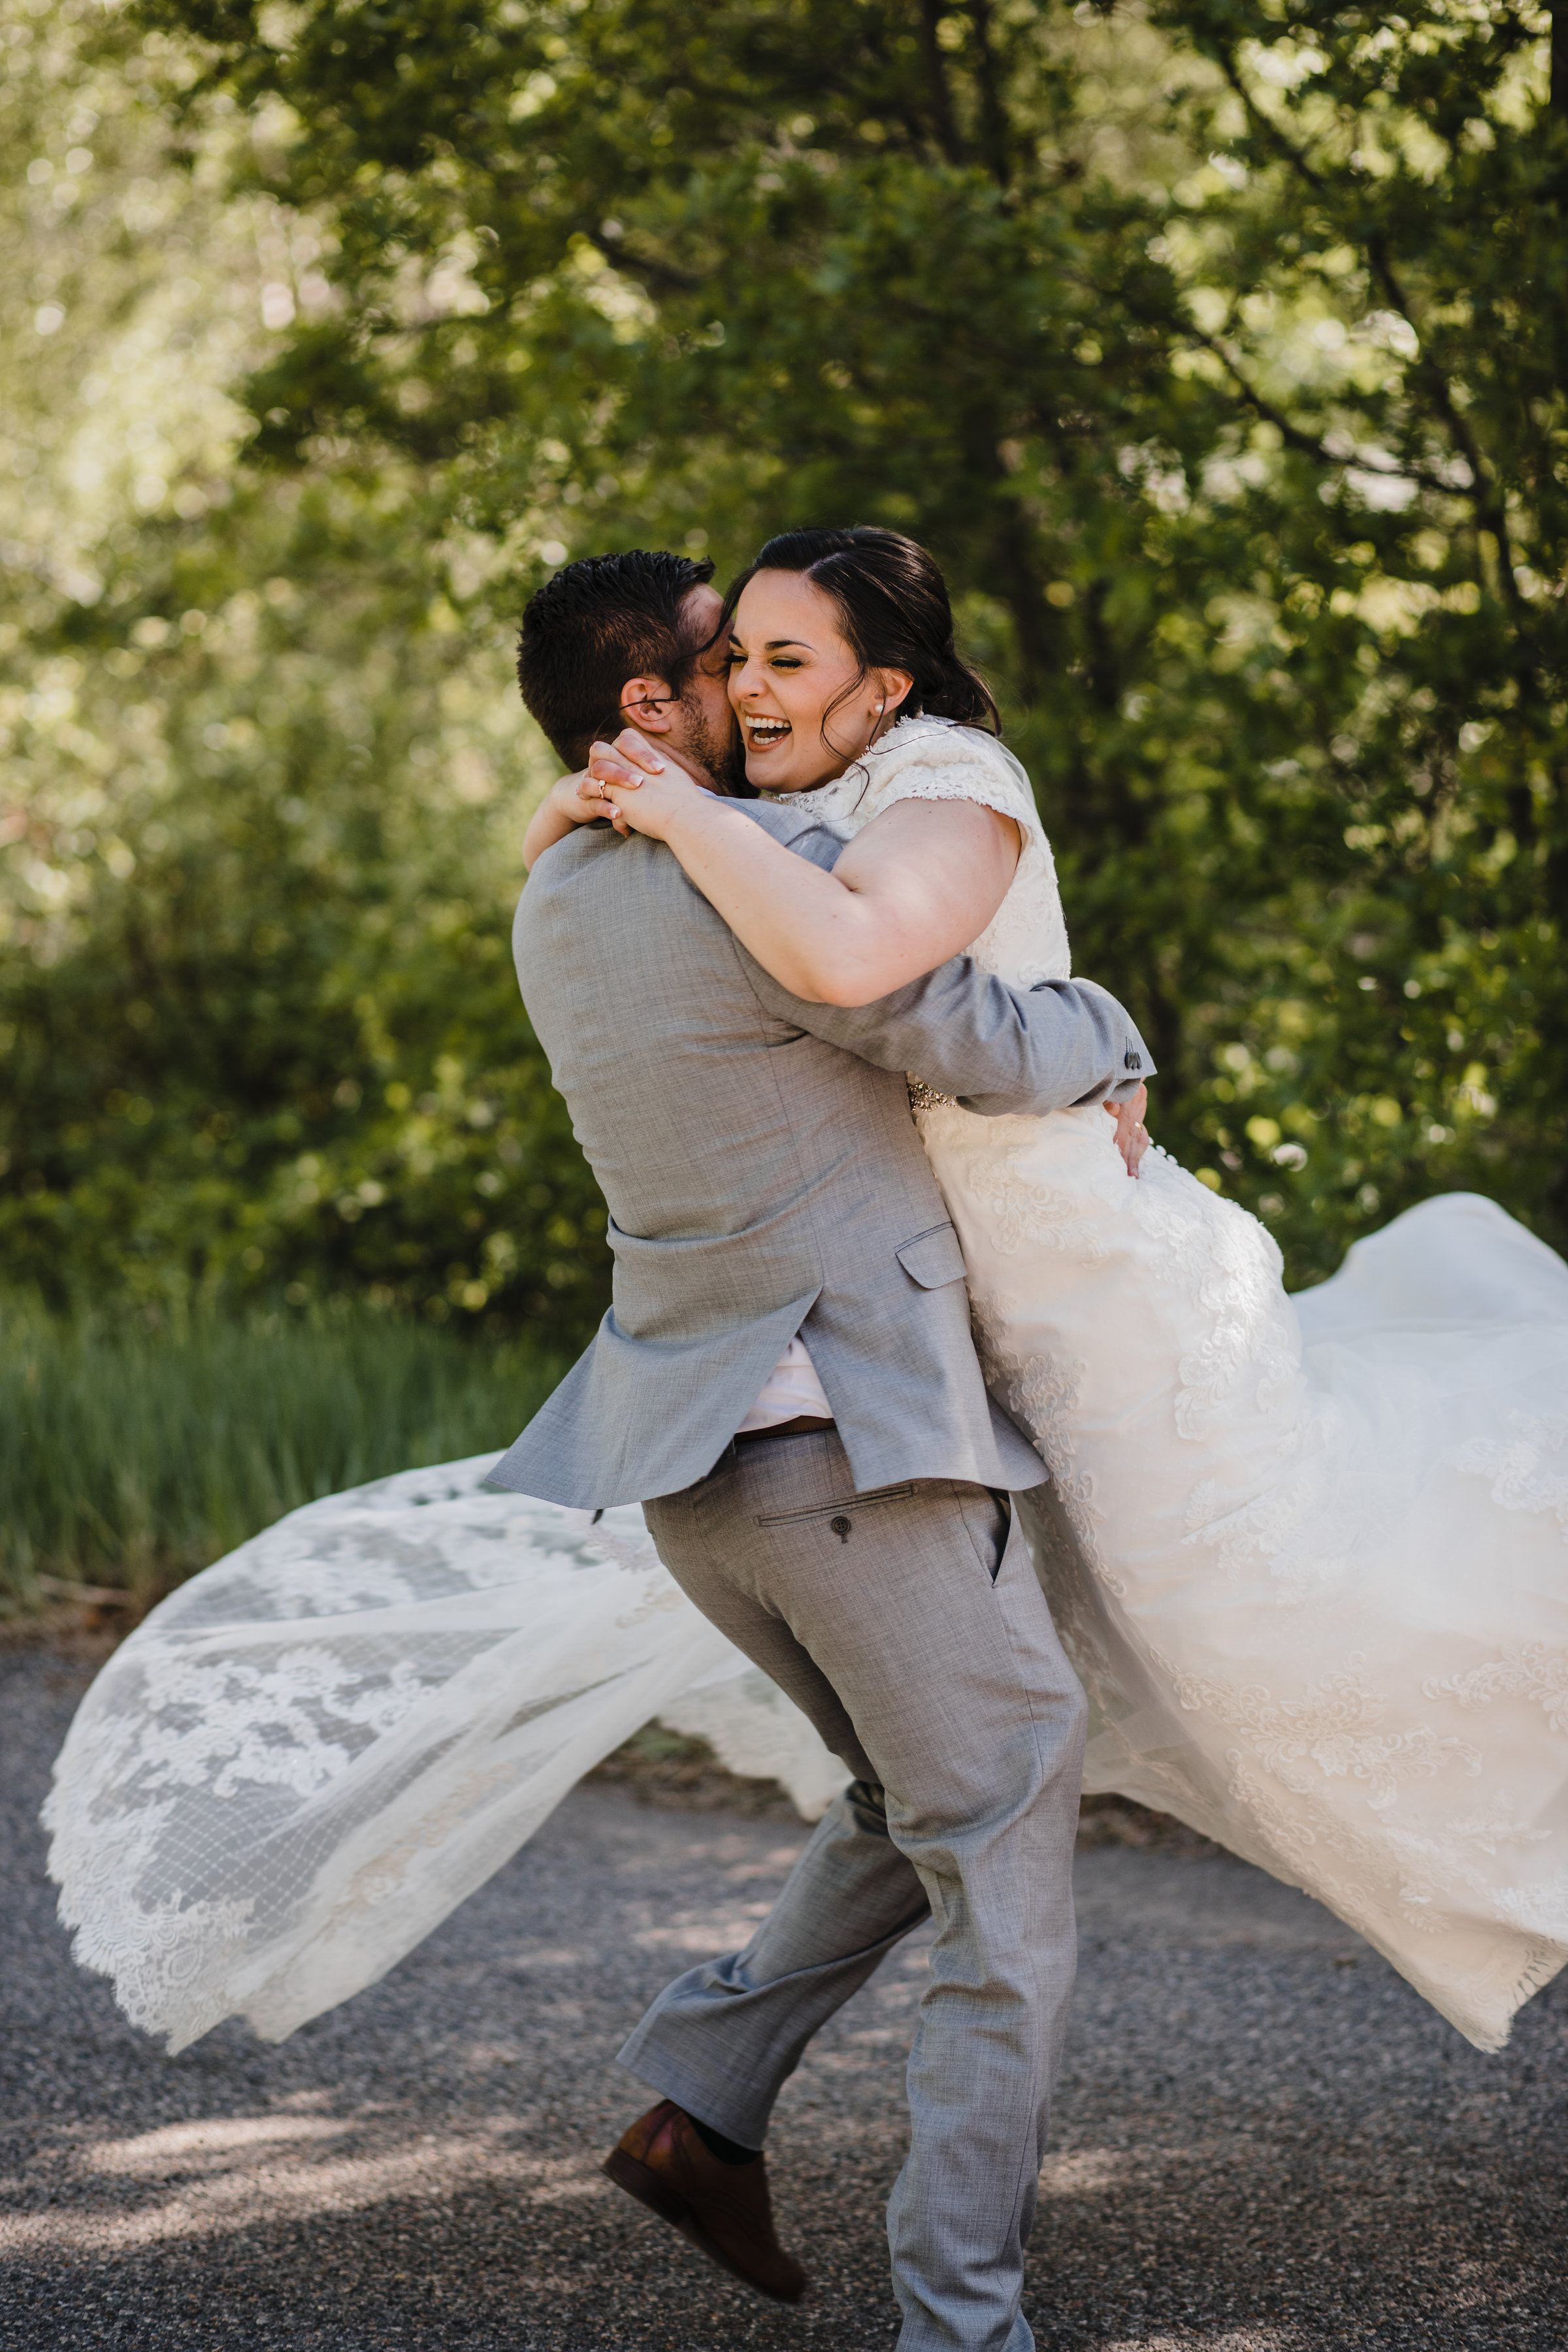 best wedding photographer in logan utah lds happy spinning lace wedding dress